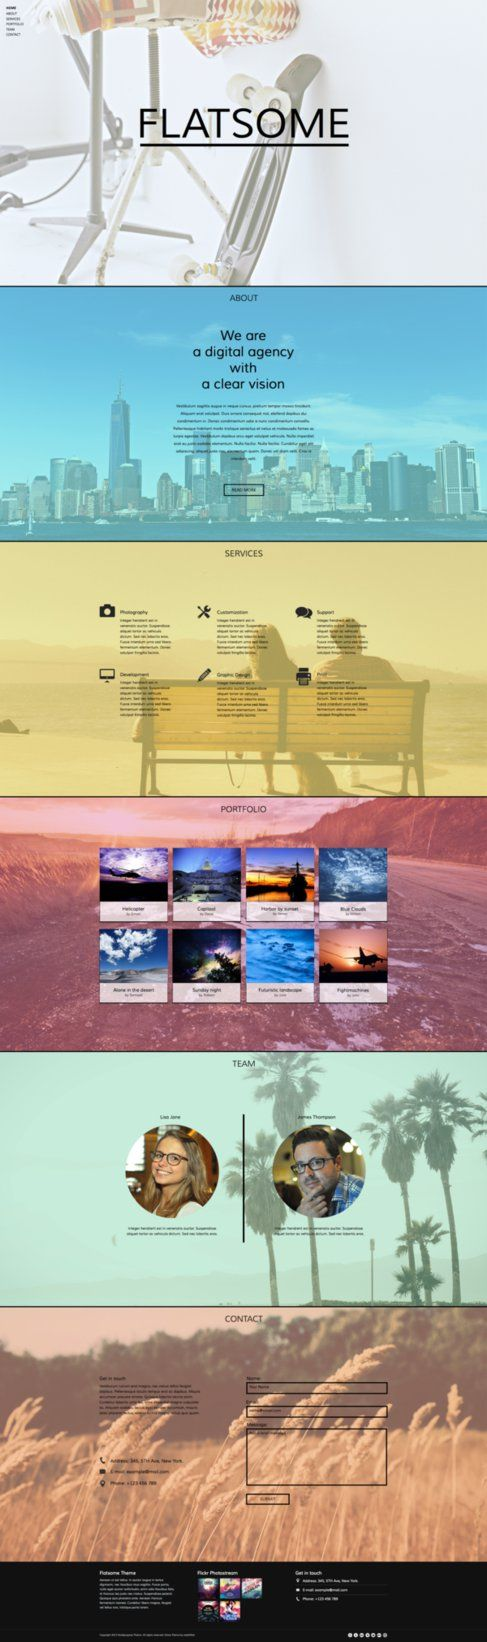 34 best adobe muse templates images on pinterest adobe muse flatsome one page muse theme by stylewish on themeforest adobe muse template pronofoot35fo Images